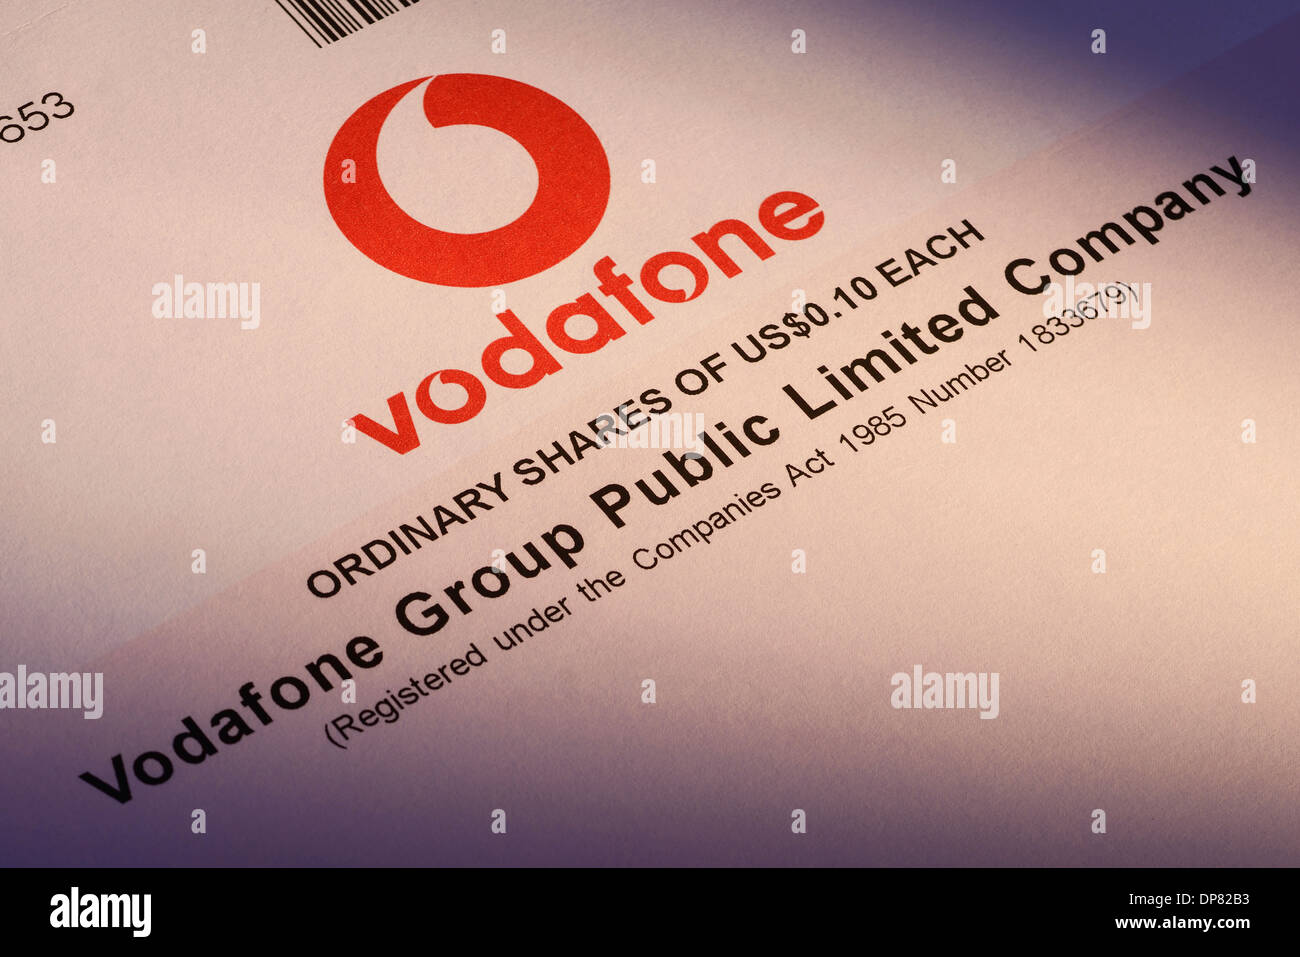 Certificat d'actions pour Vodafone Plc Photo Stock